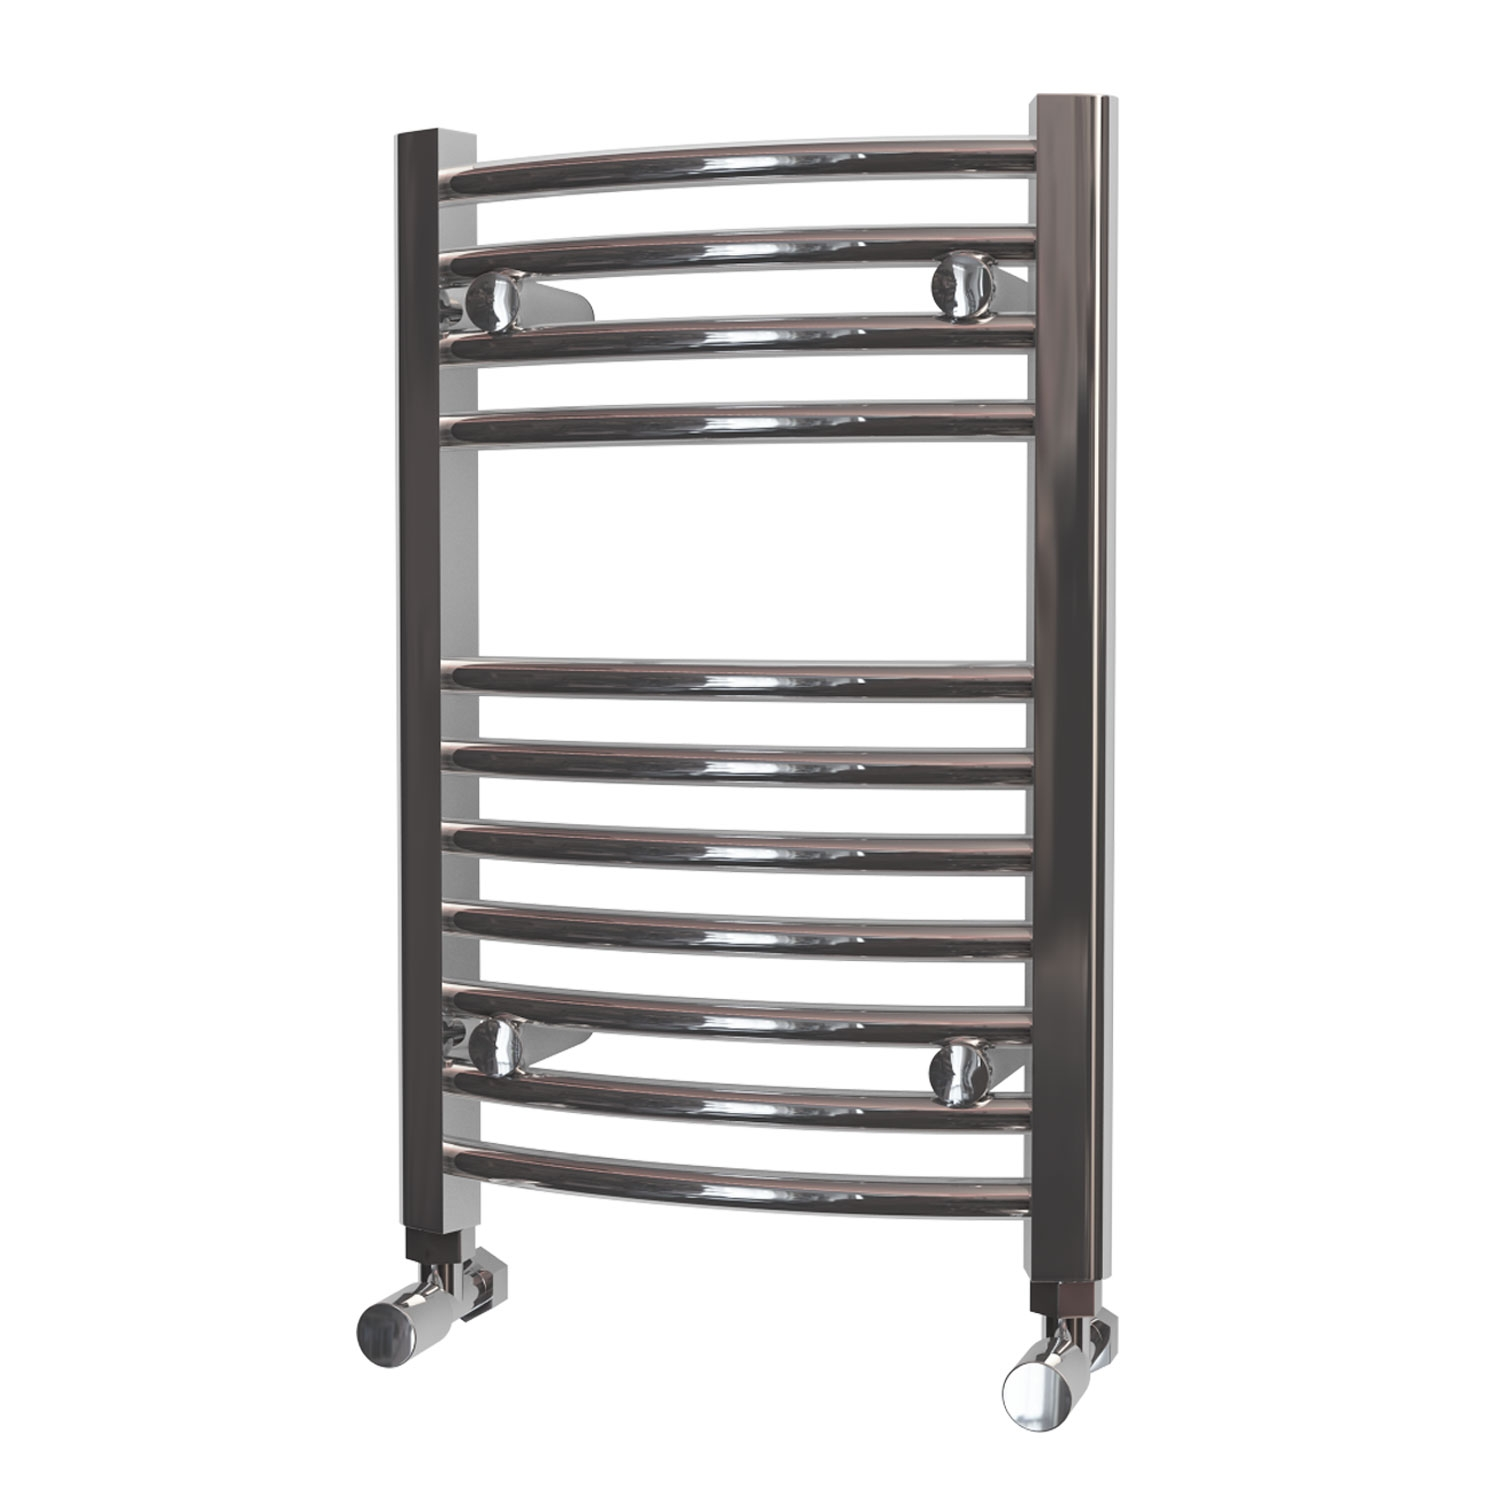 MaxHeat Camborne Curved Towel Rail, 600mm High x 400mm Wide, Chrome